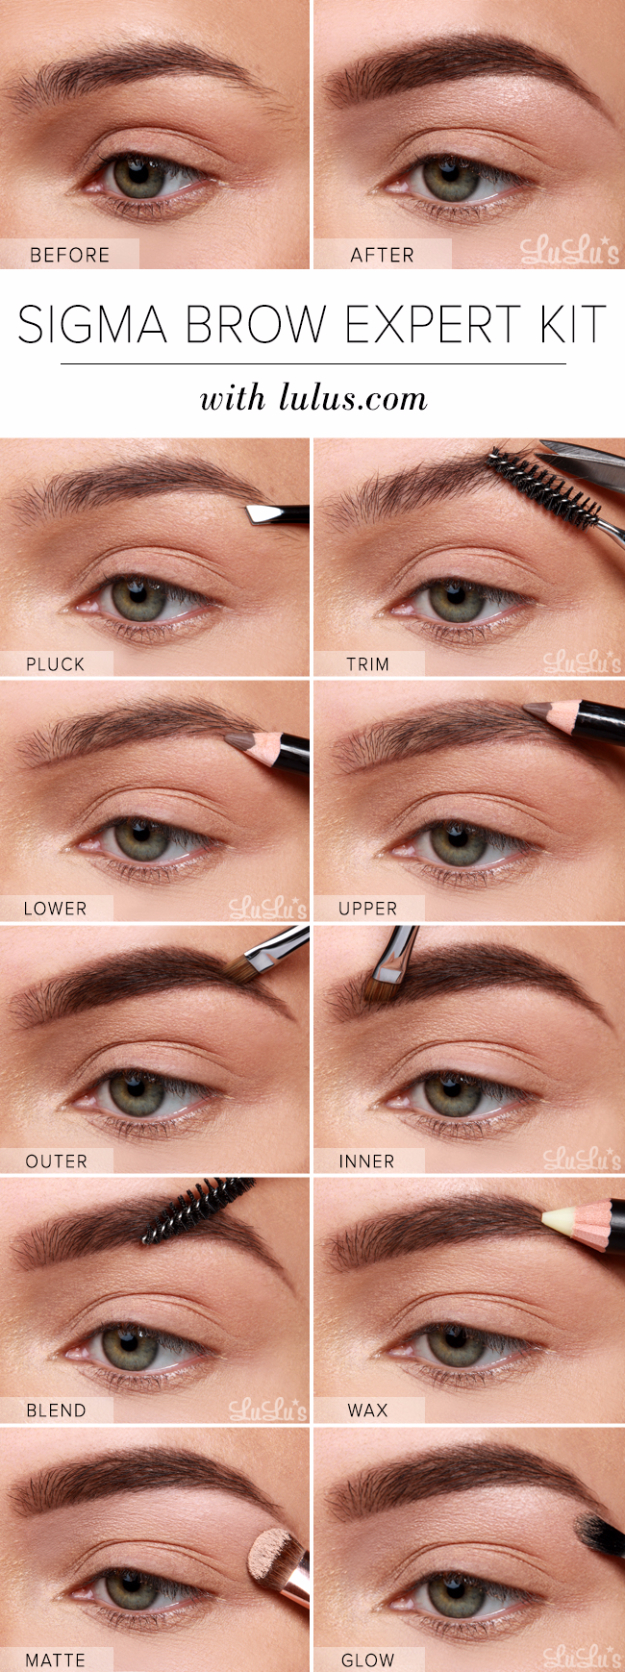 Cool DIY Makeup Hacks for Quick and Easy Beauty Ideas - Sigma Brow Expert Kit Eyebrow - How To Fix Broken Makeup, Tips and Tricks for Mascara and Eye Liner, Lipstick and Foundation Tutorials - Fast Do It Yourself Beauty Projects for Women